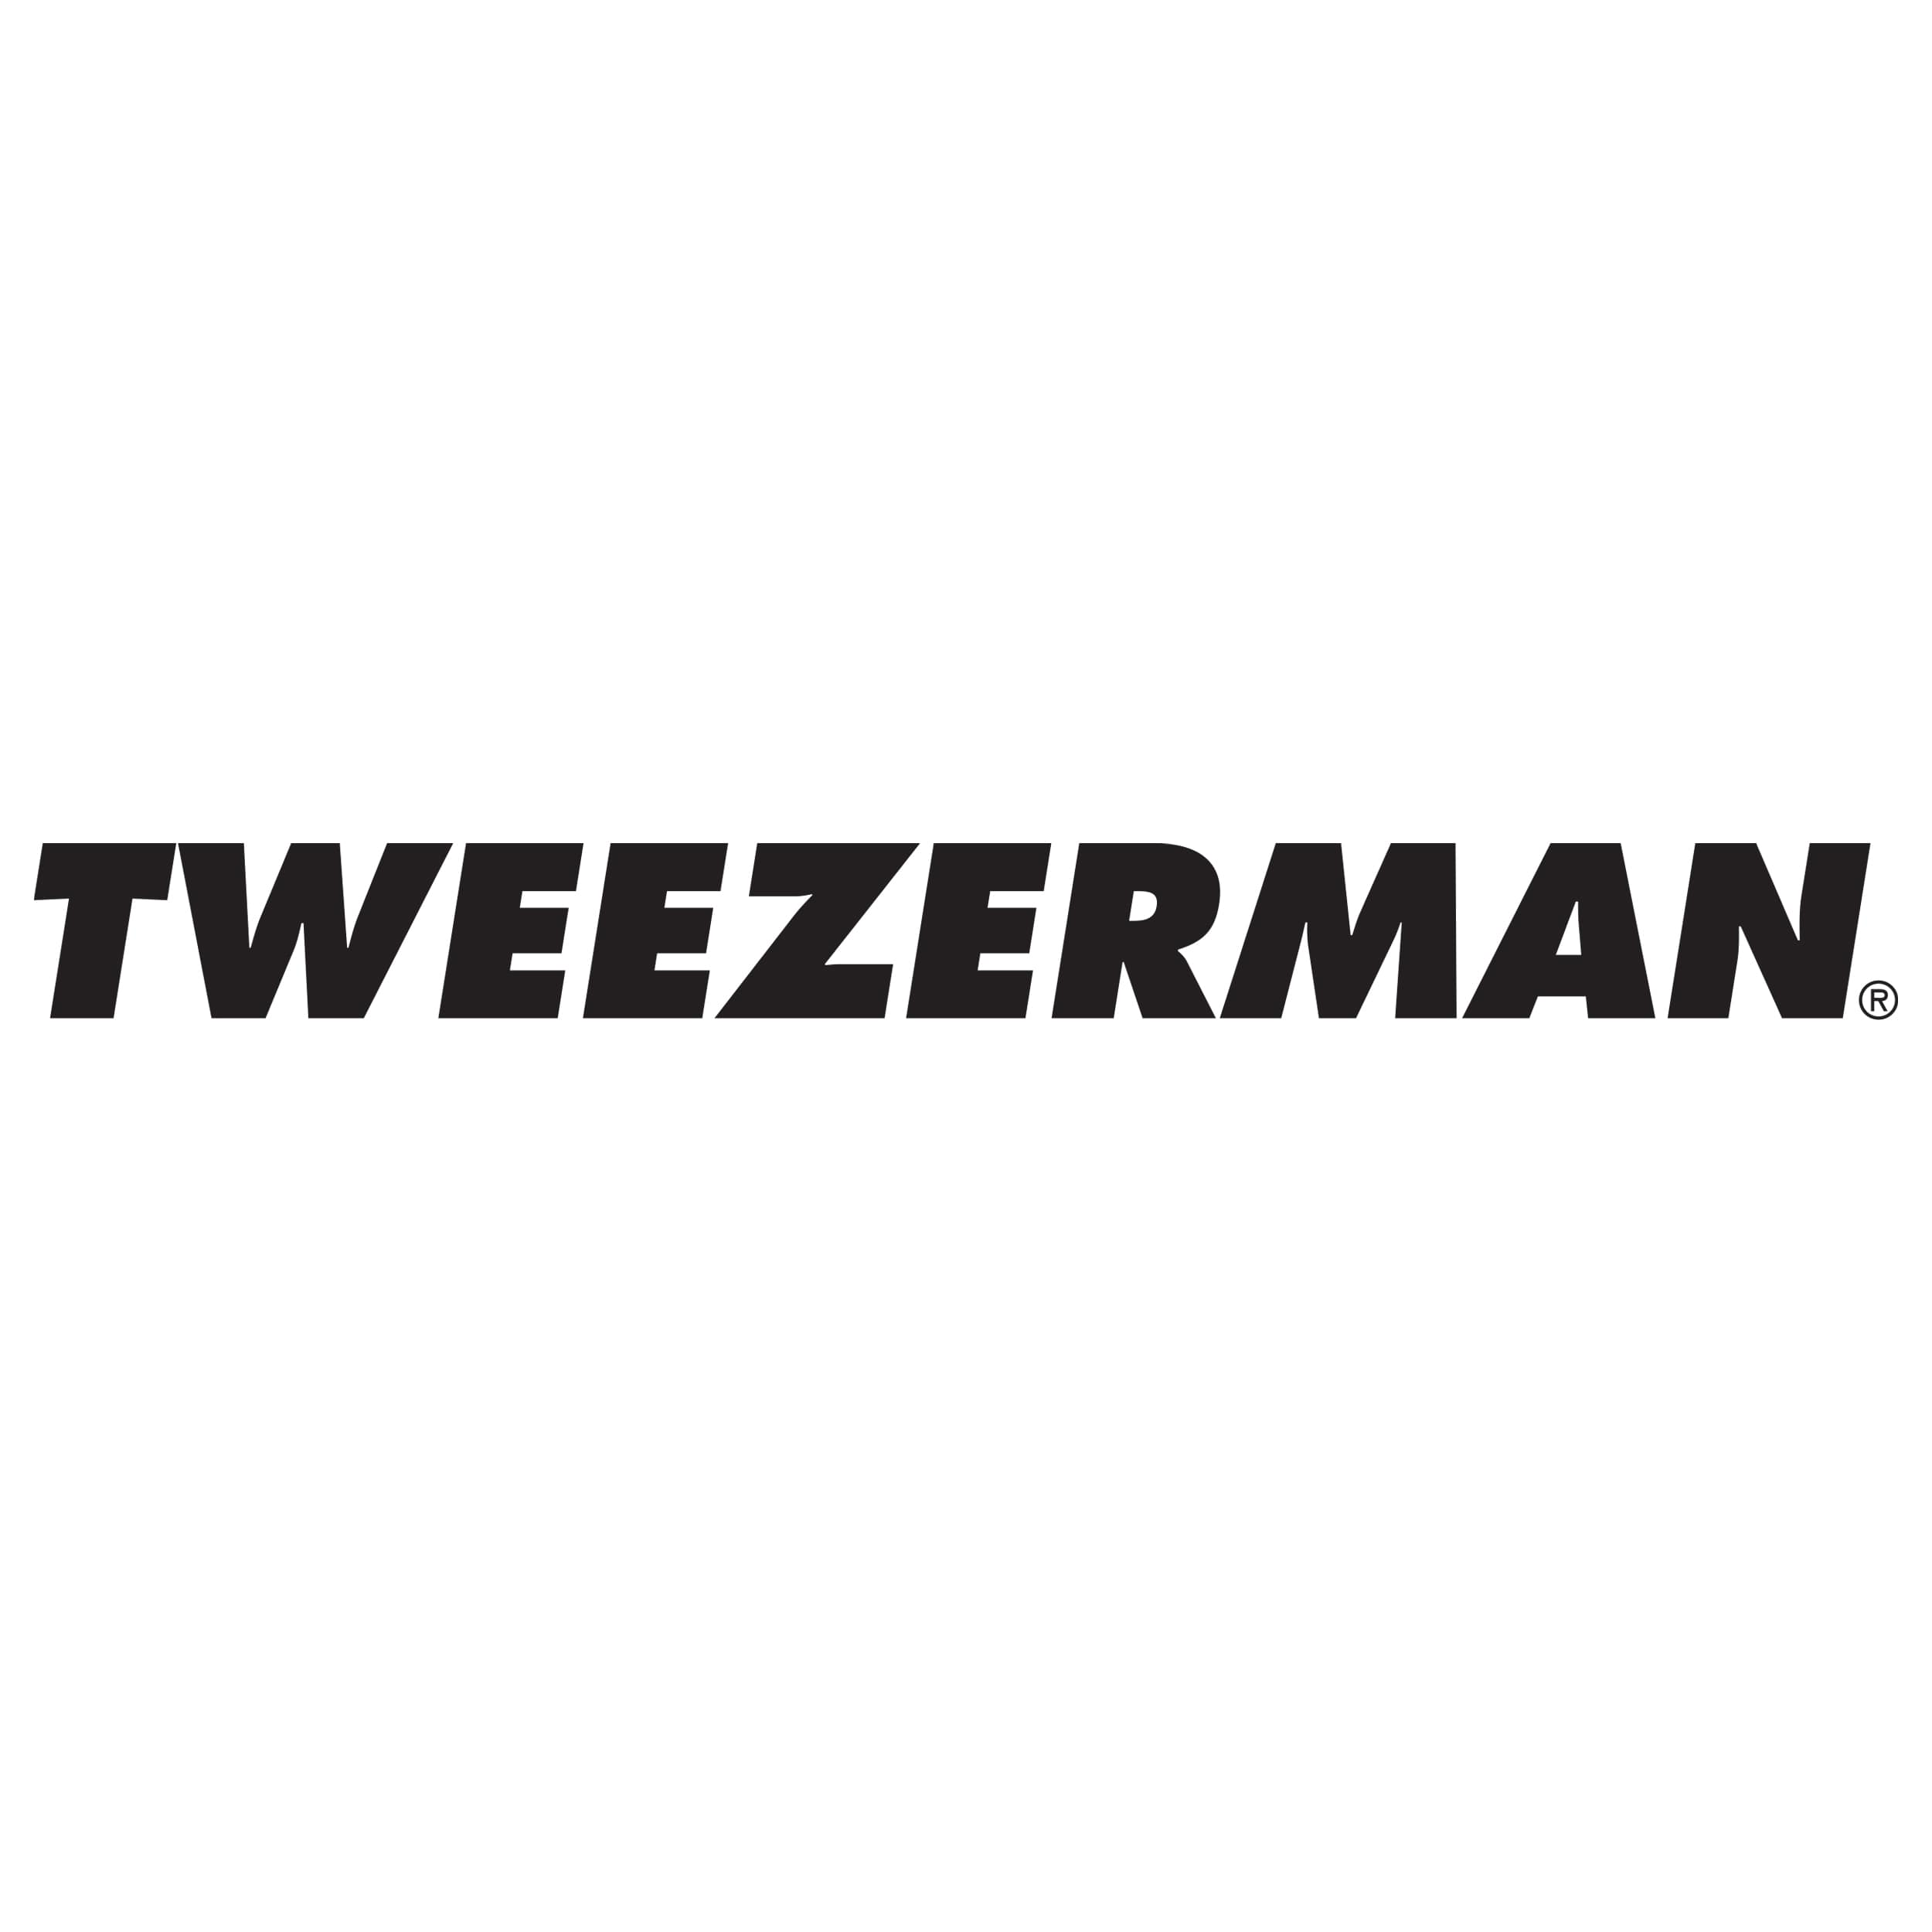 Brow Shaping Scissors & Brush - 2914-R - Tweezerman UK